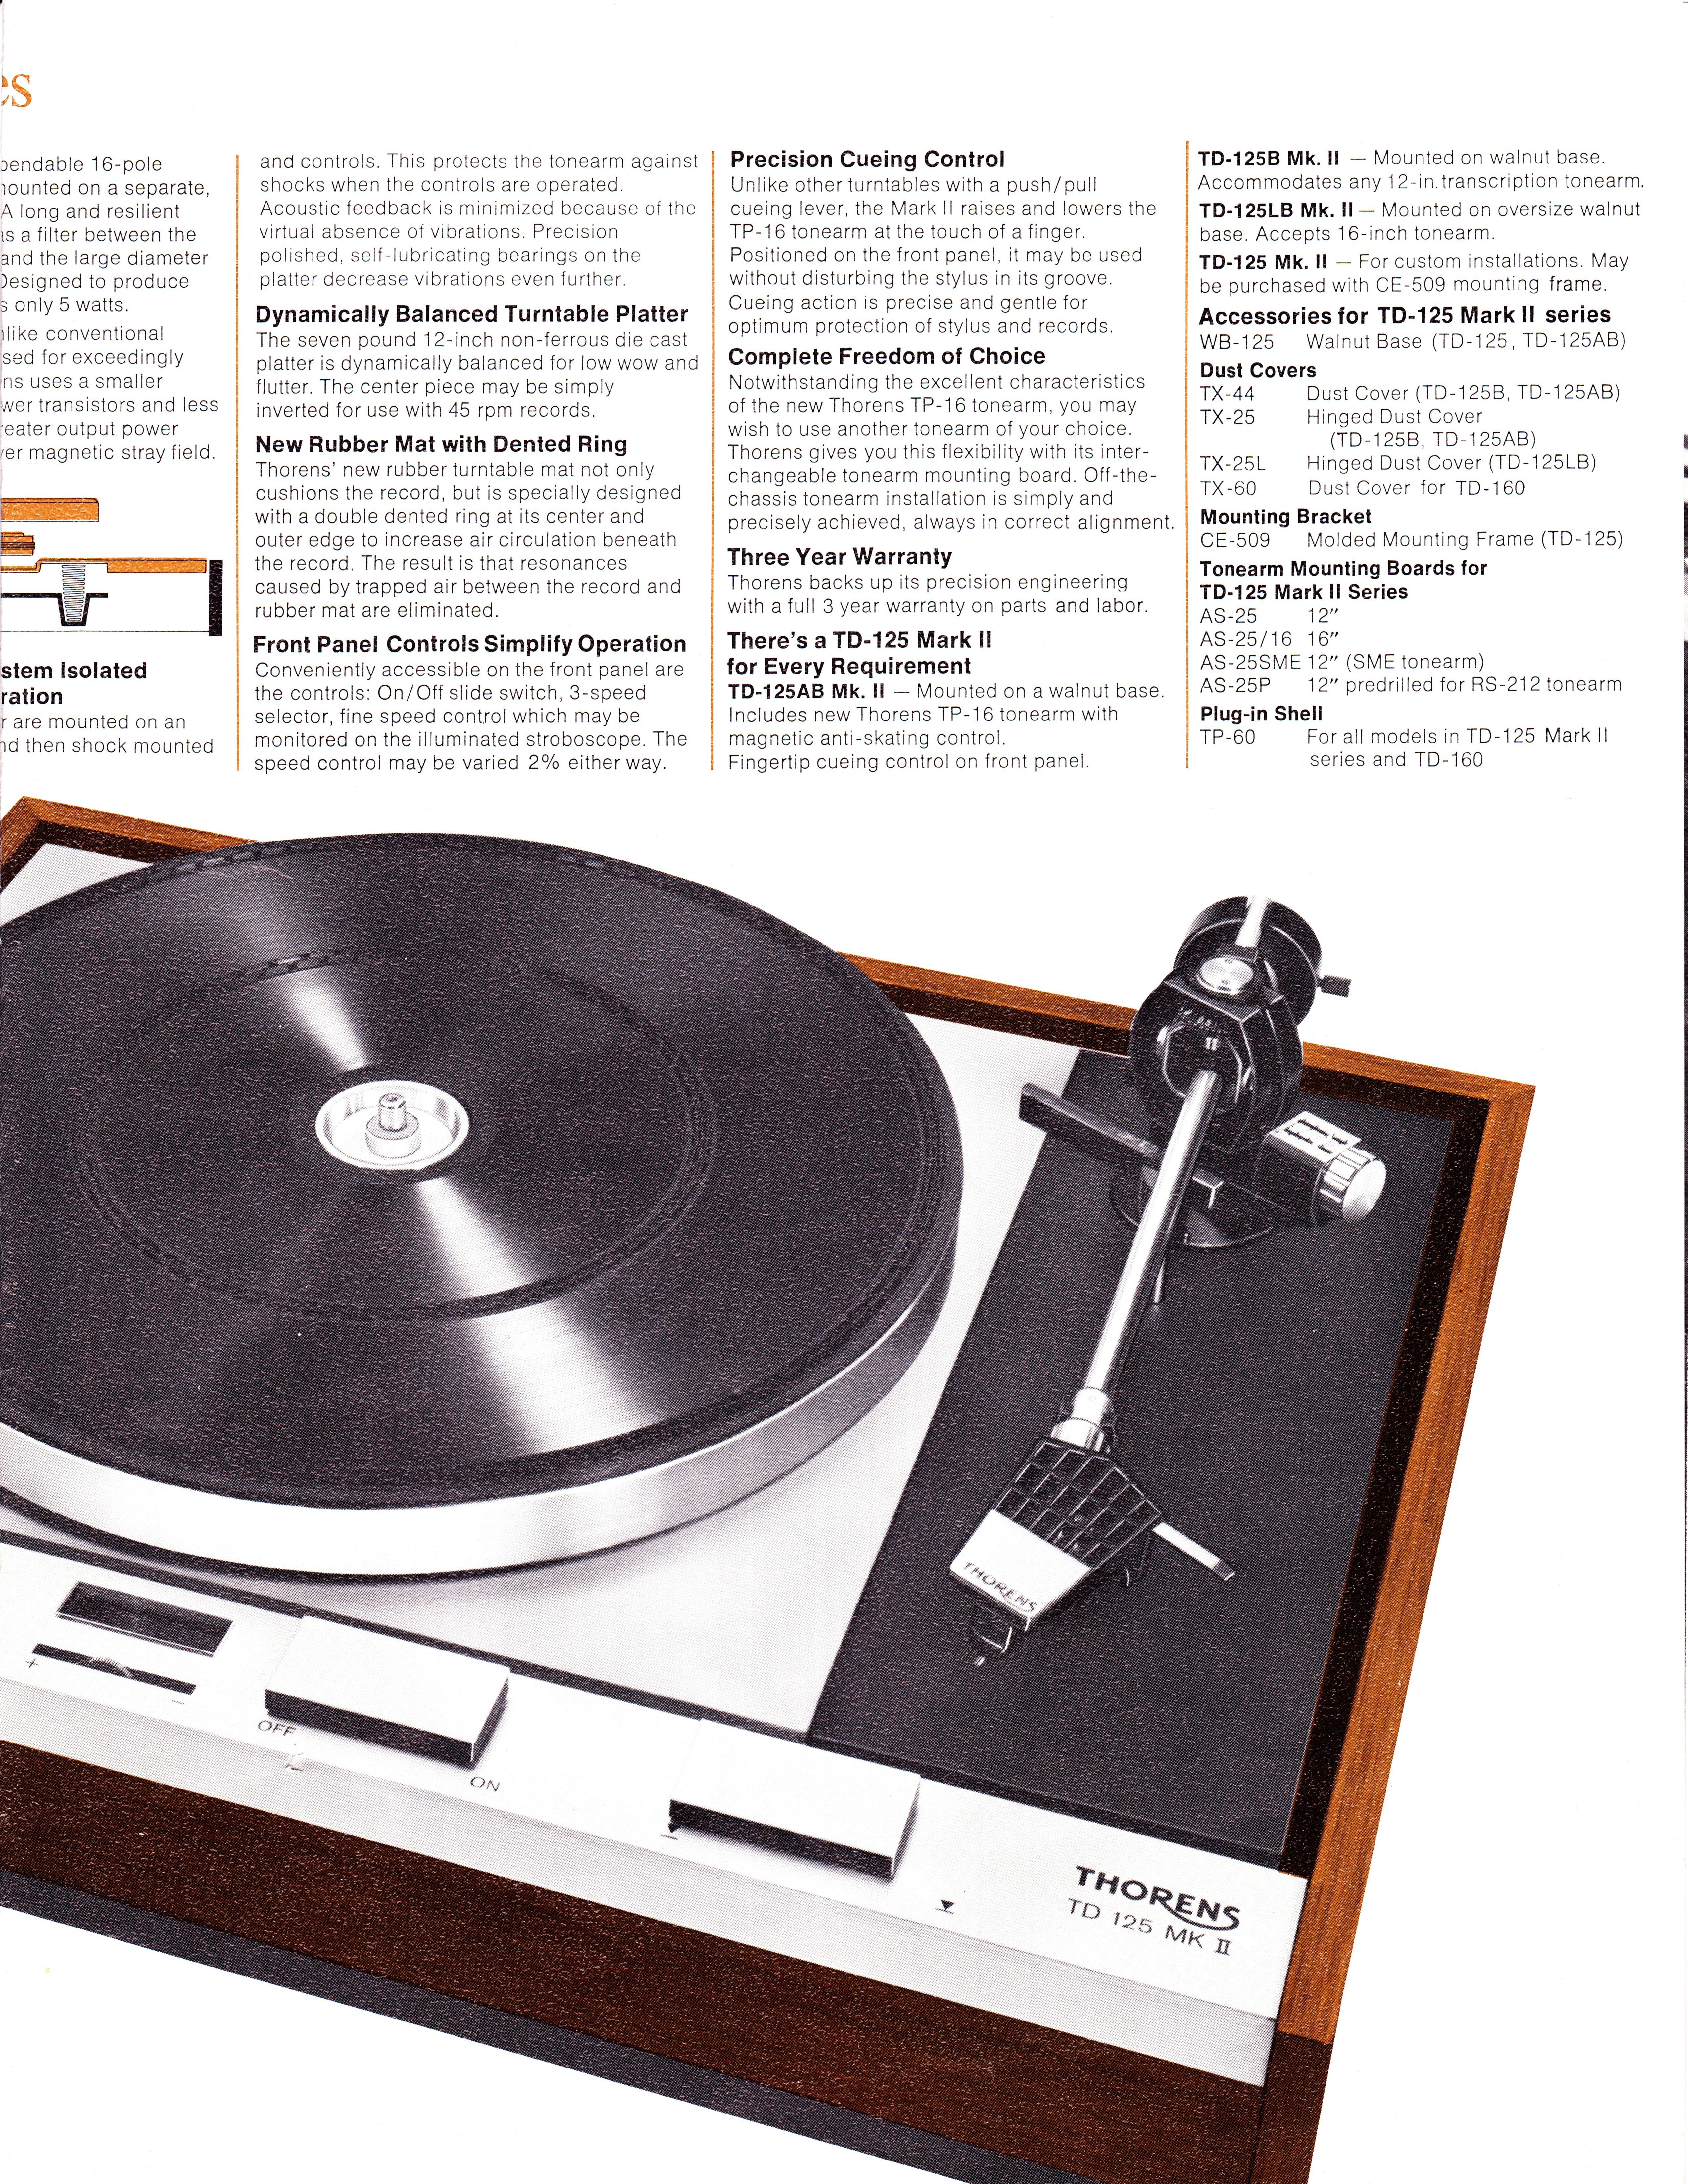 Thorens td 125 Mkii Turntable For Sale Thorens Td-125 Mkii And